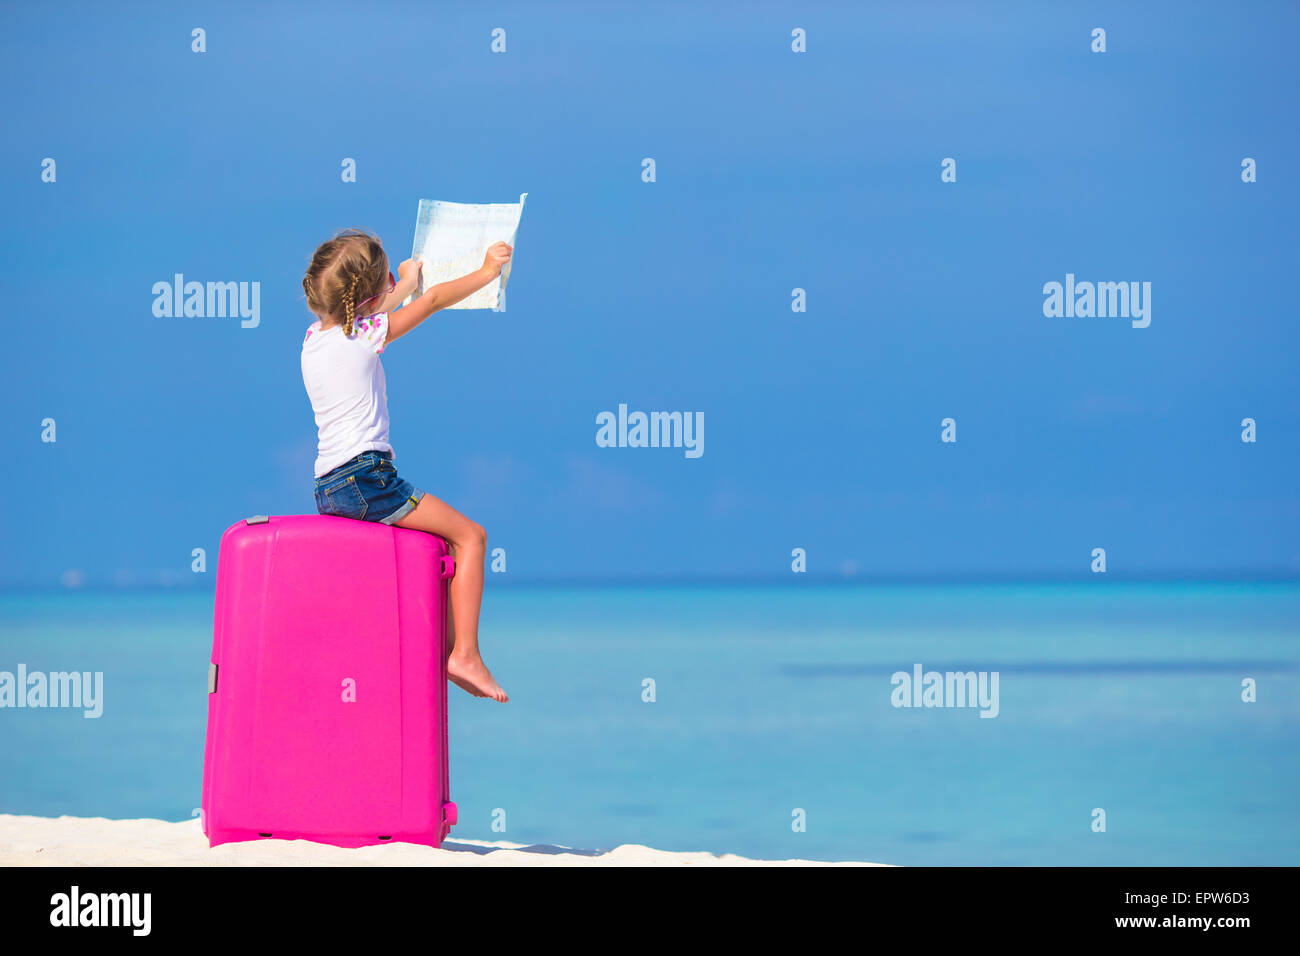 Little adorable girl with big pink suitcase and map of island on ...